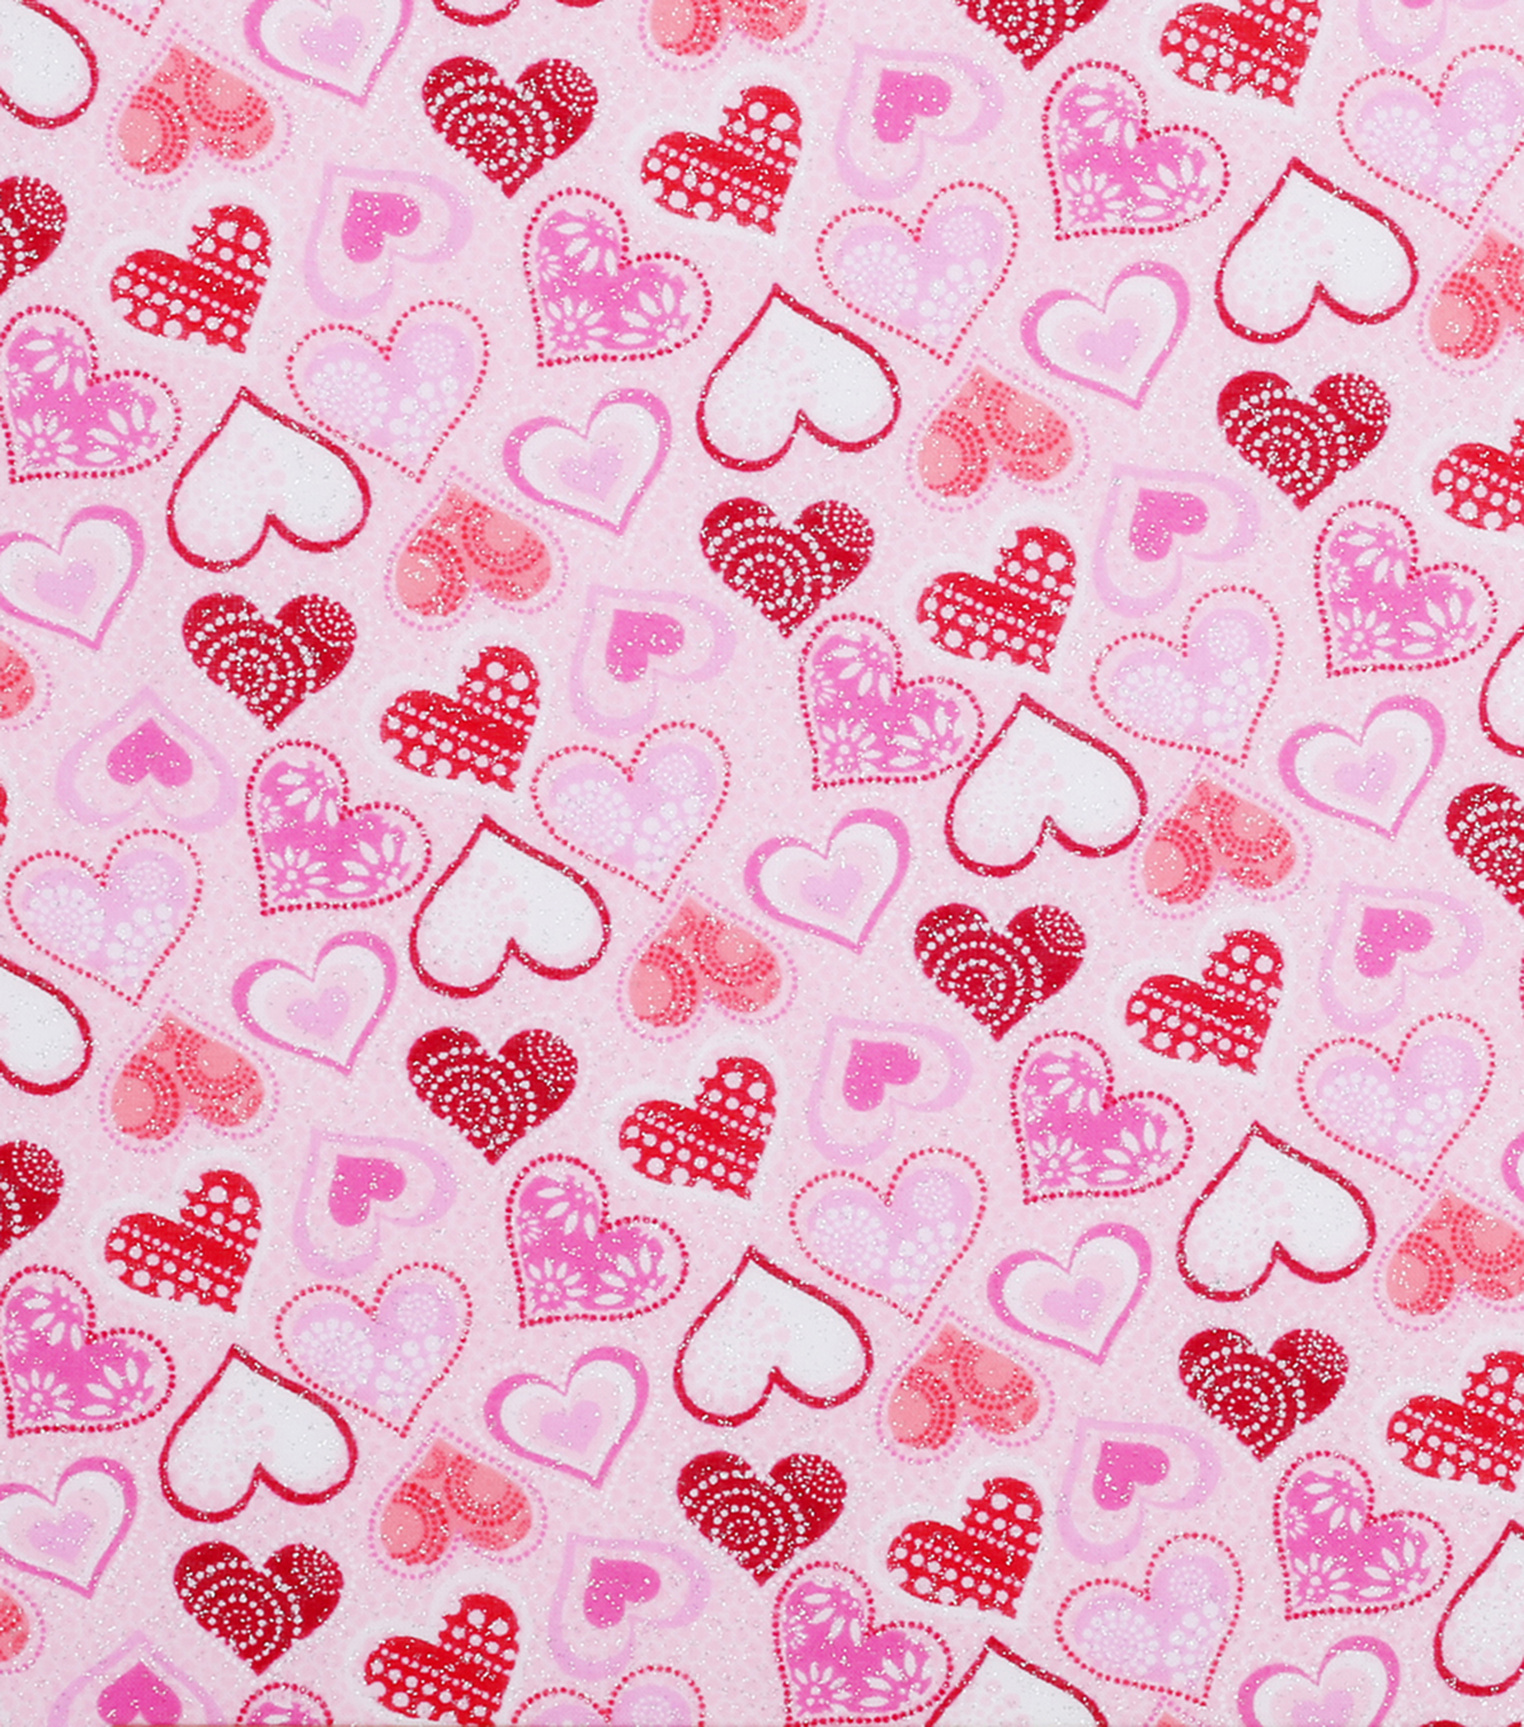 valentineu0027s day glitter fabric 43u0027u0027 patterned hearts